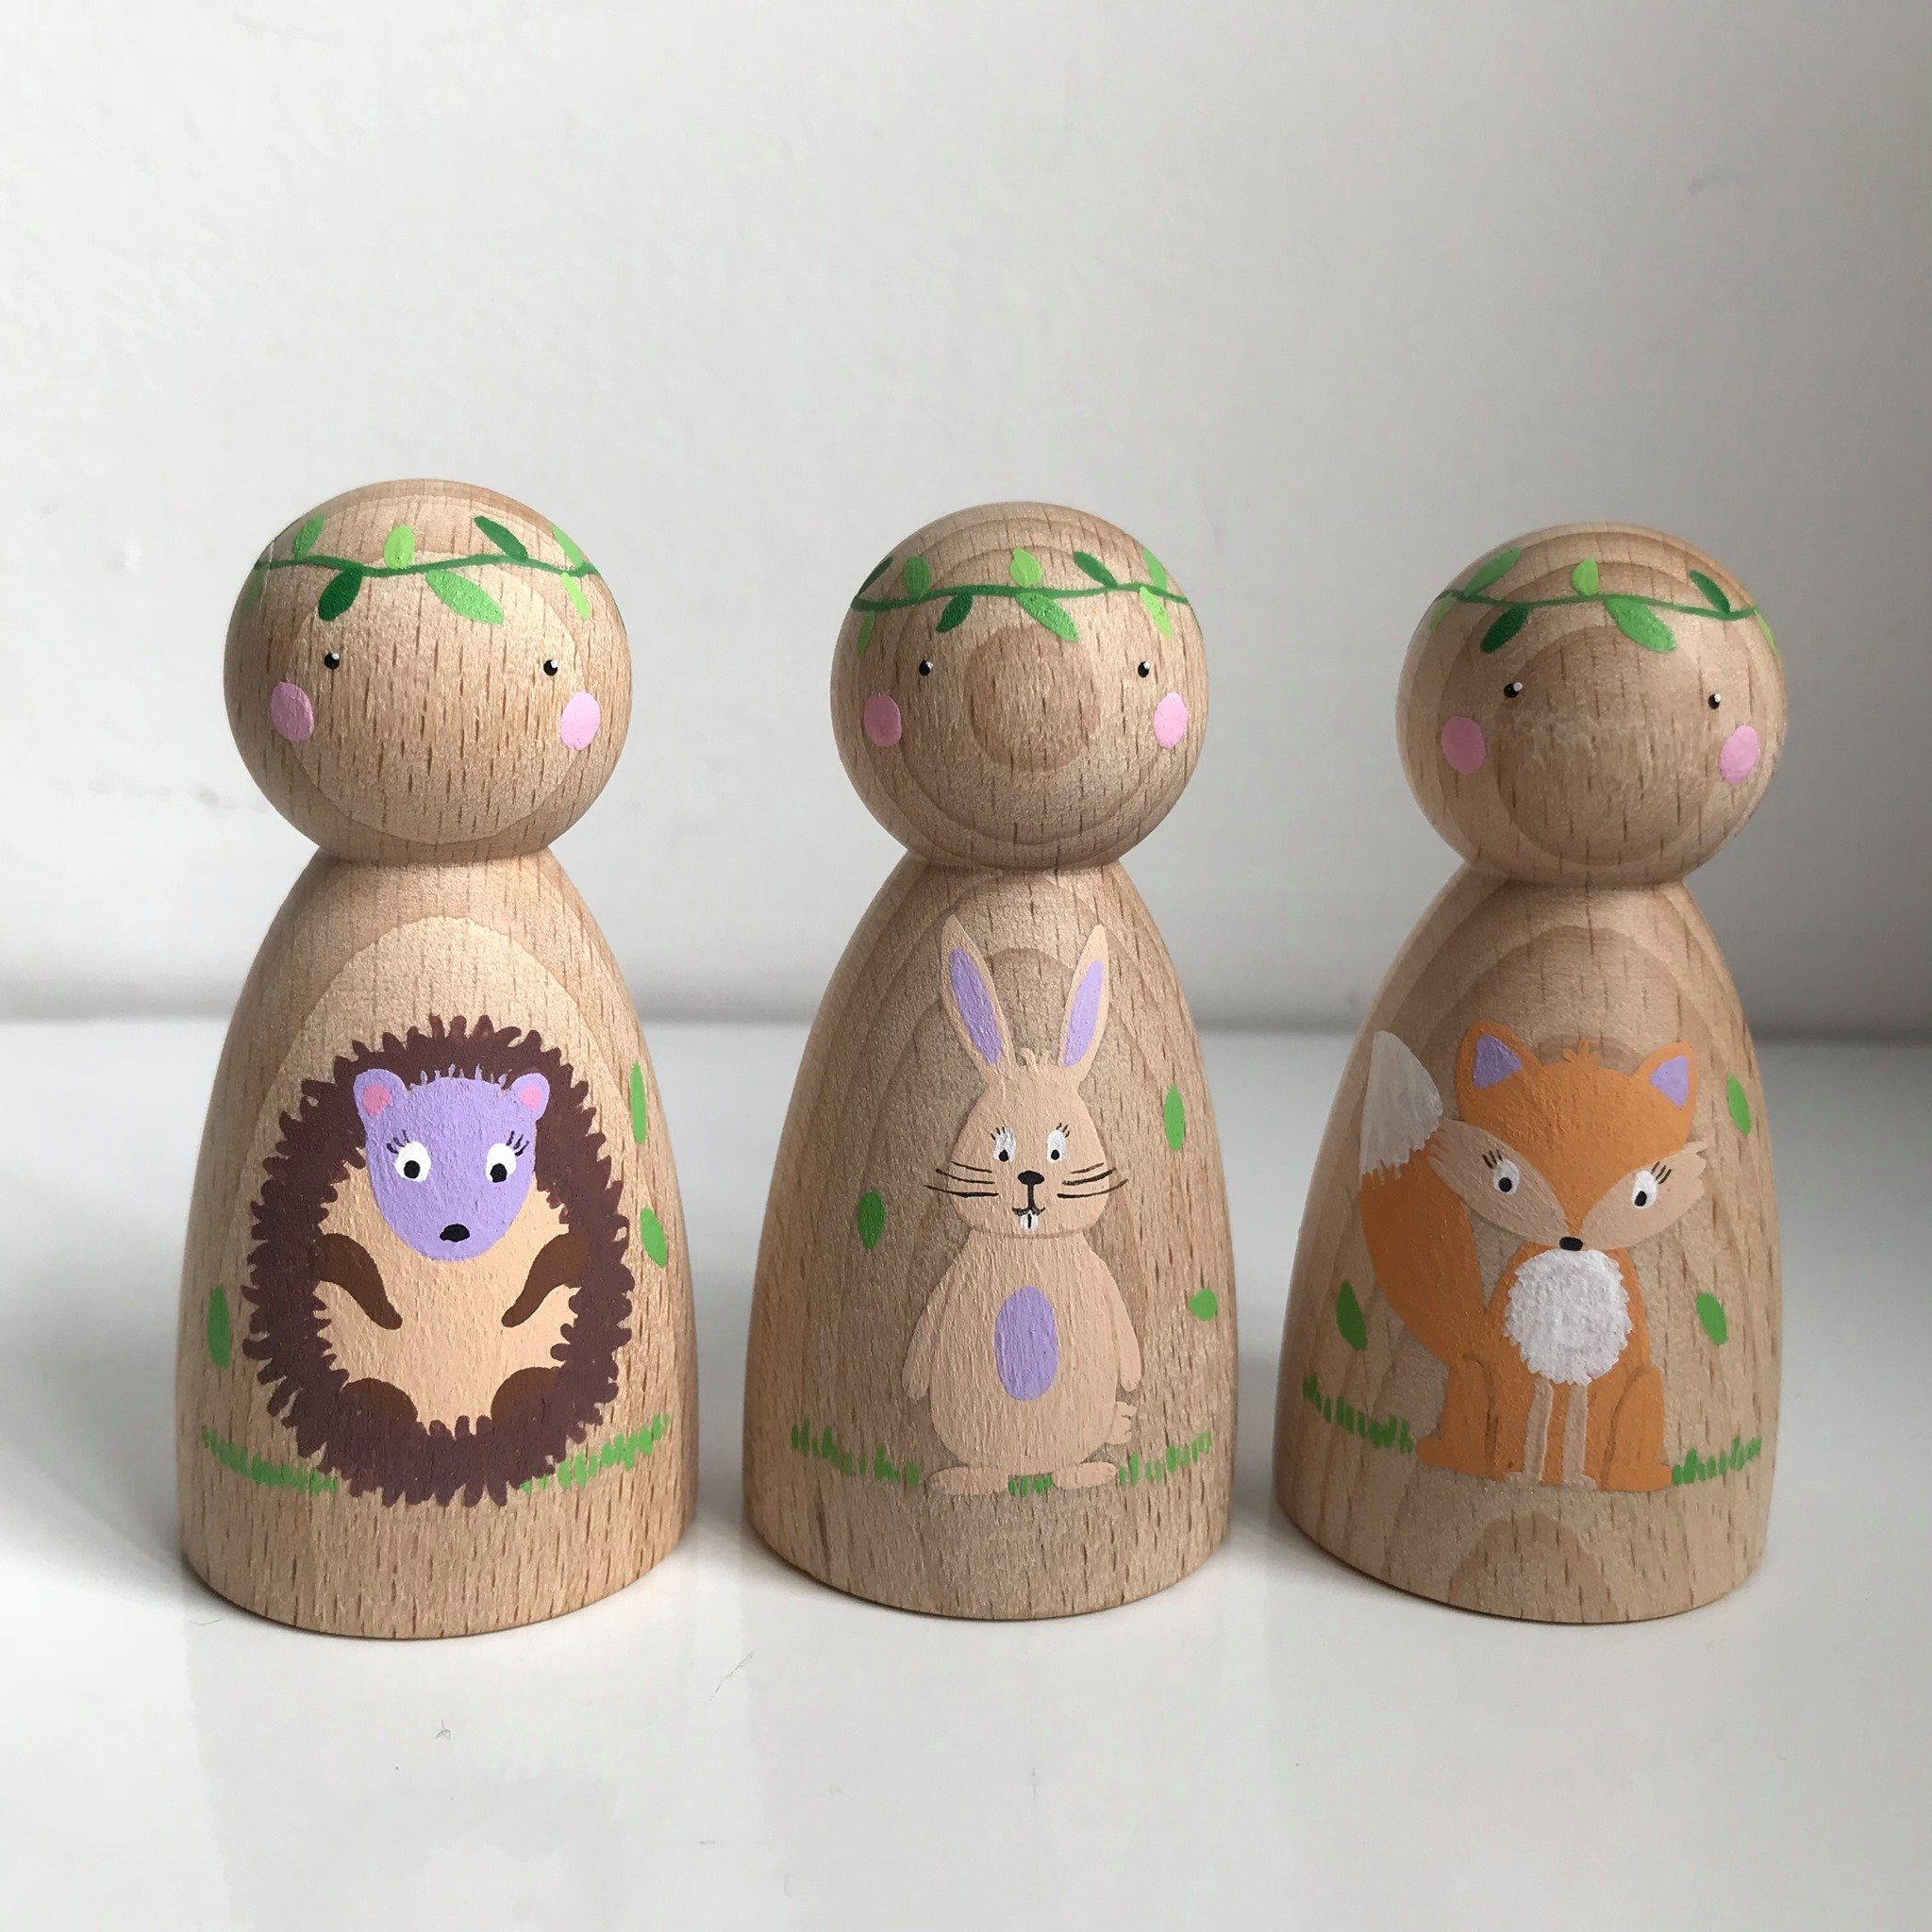 Noah's Friends Peg Doll by Melodie Treasures